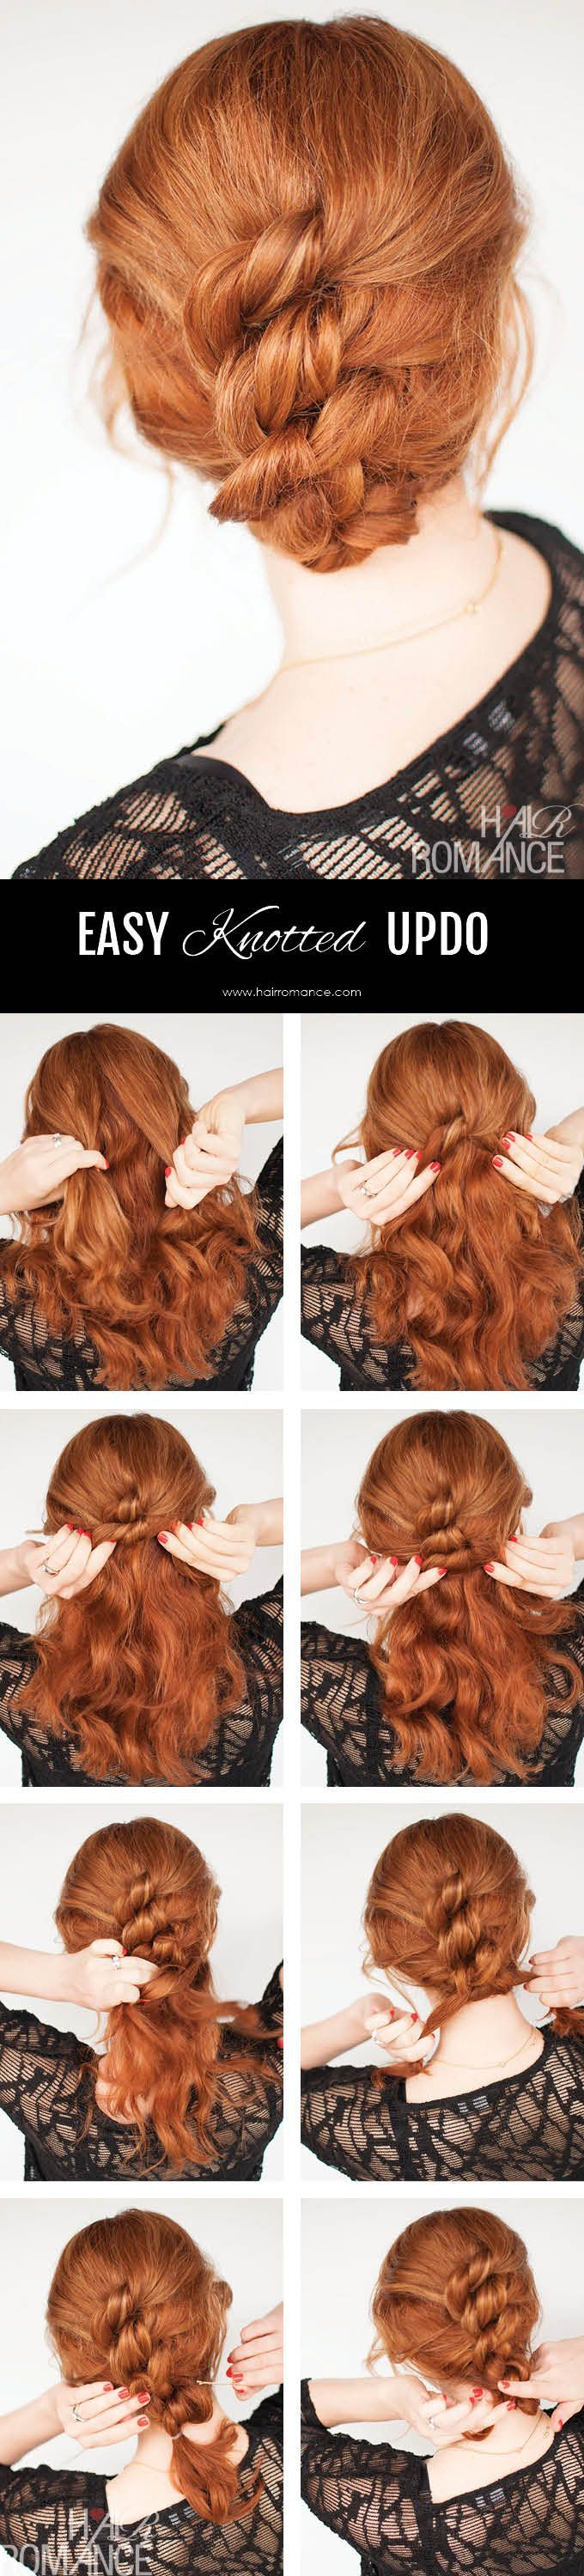 112 best Cool updos and hair images on Pinterest